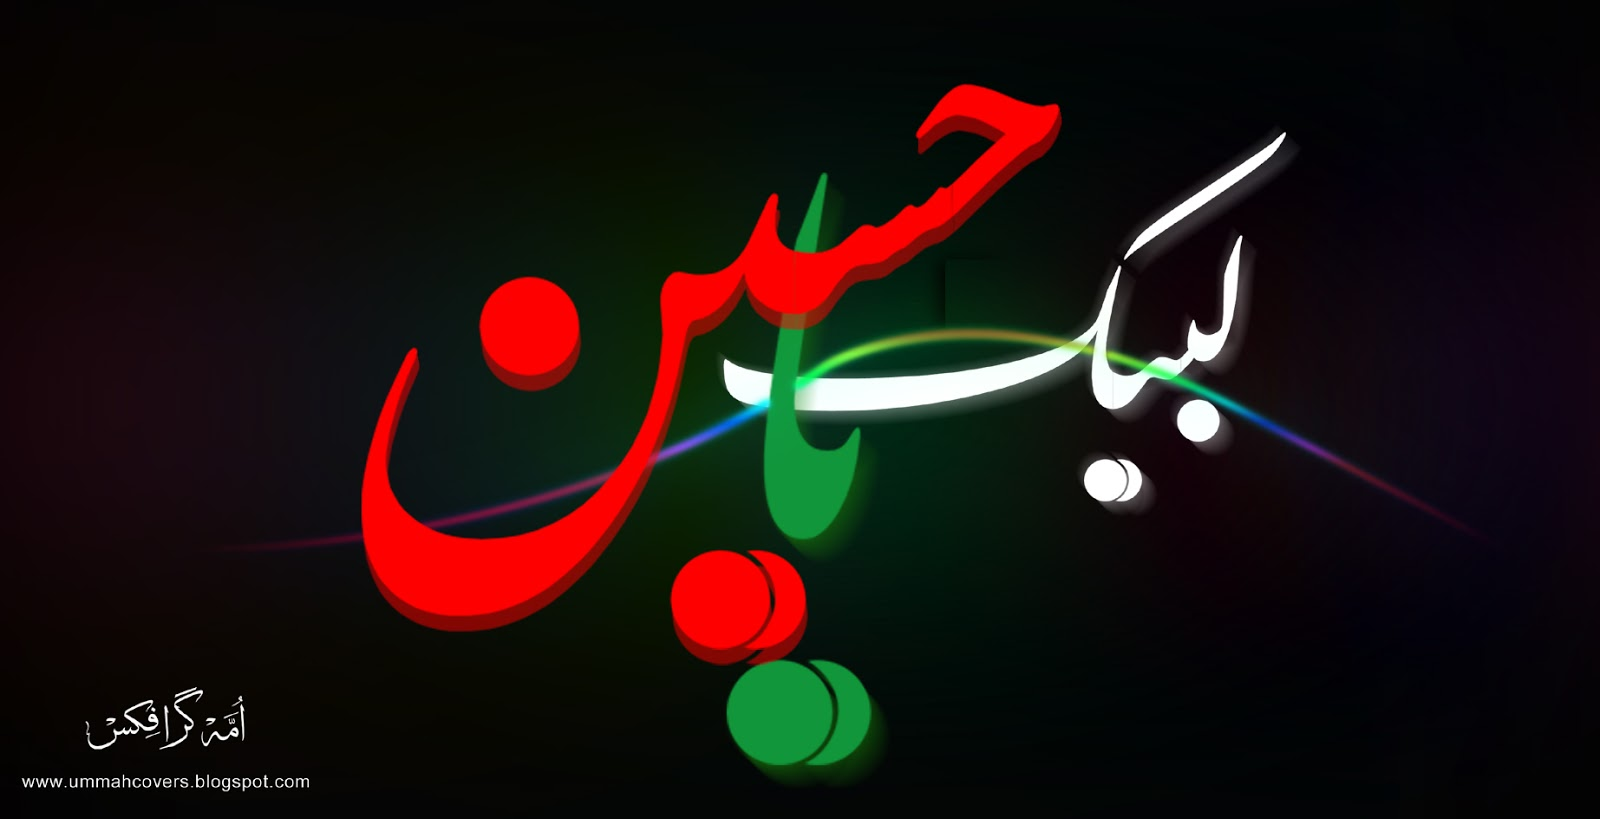 Ya Hussain Wallpapers Hd  RELIGION OF ISLAM ya ali madad pics Ya Hussain as  2013 7260